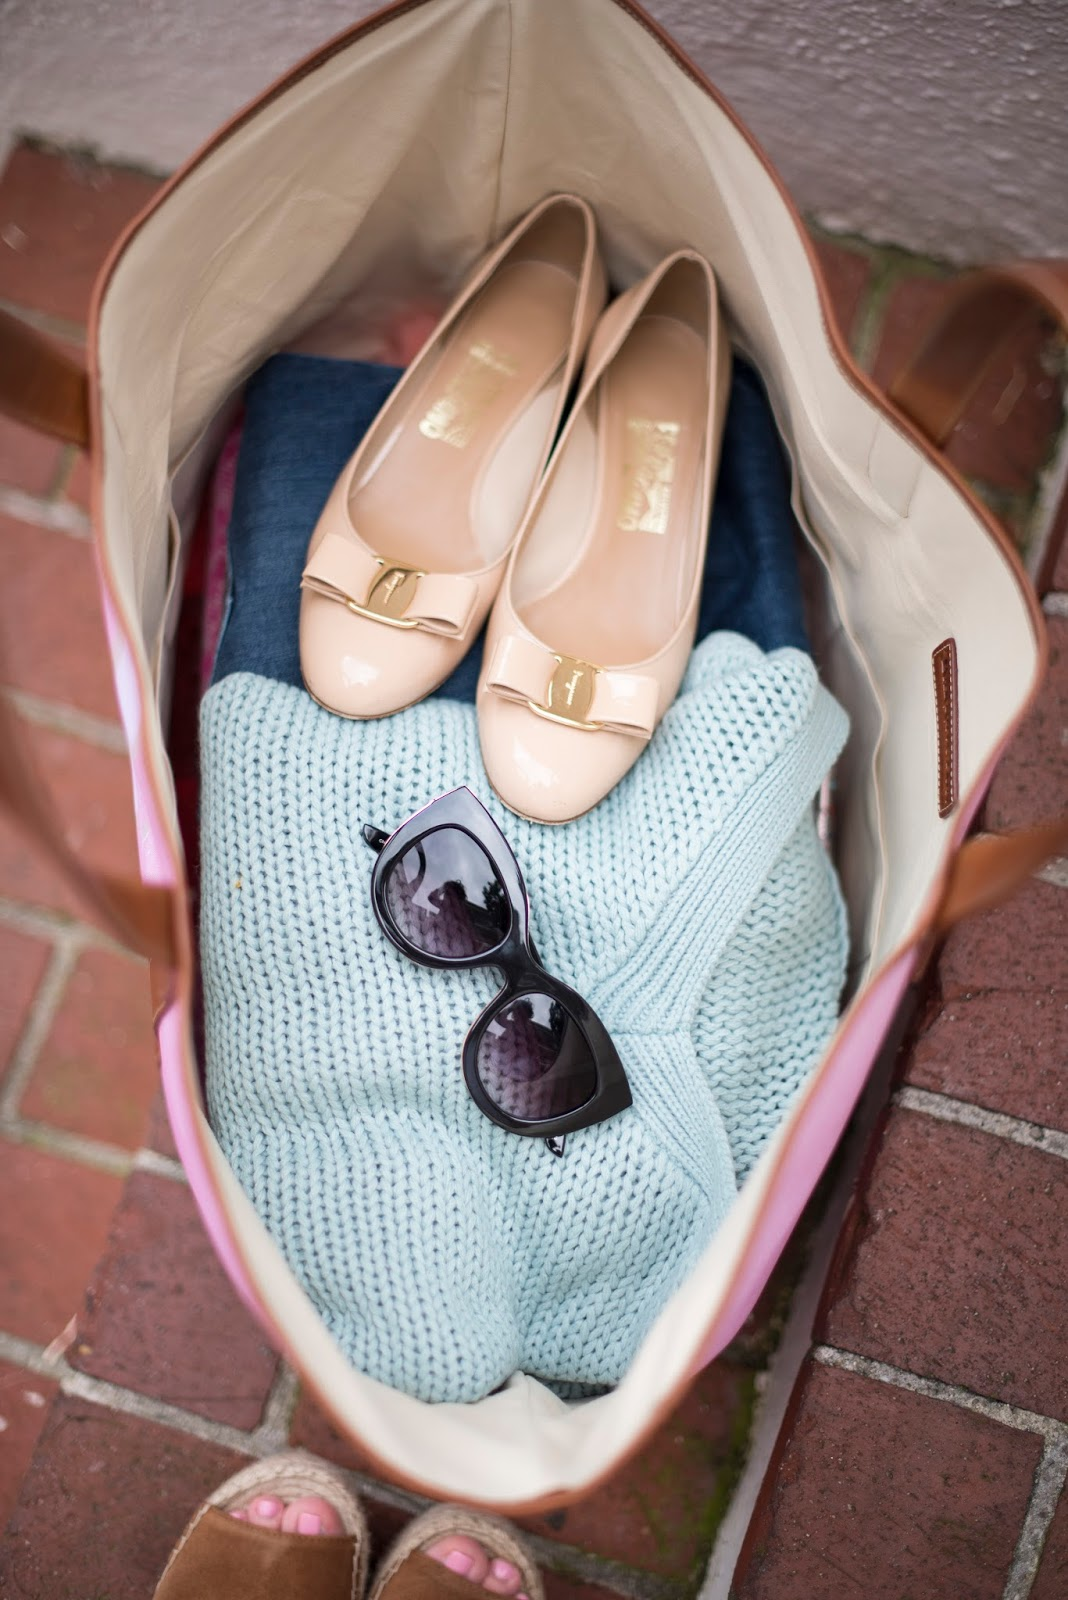 Ferragamo Vara Pumps - Something Delightful Blog